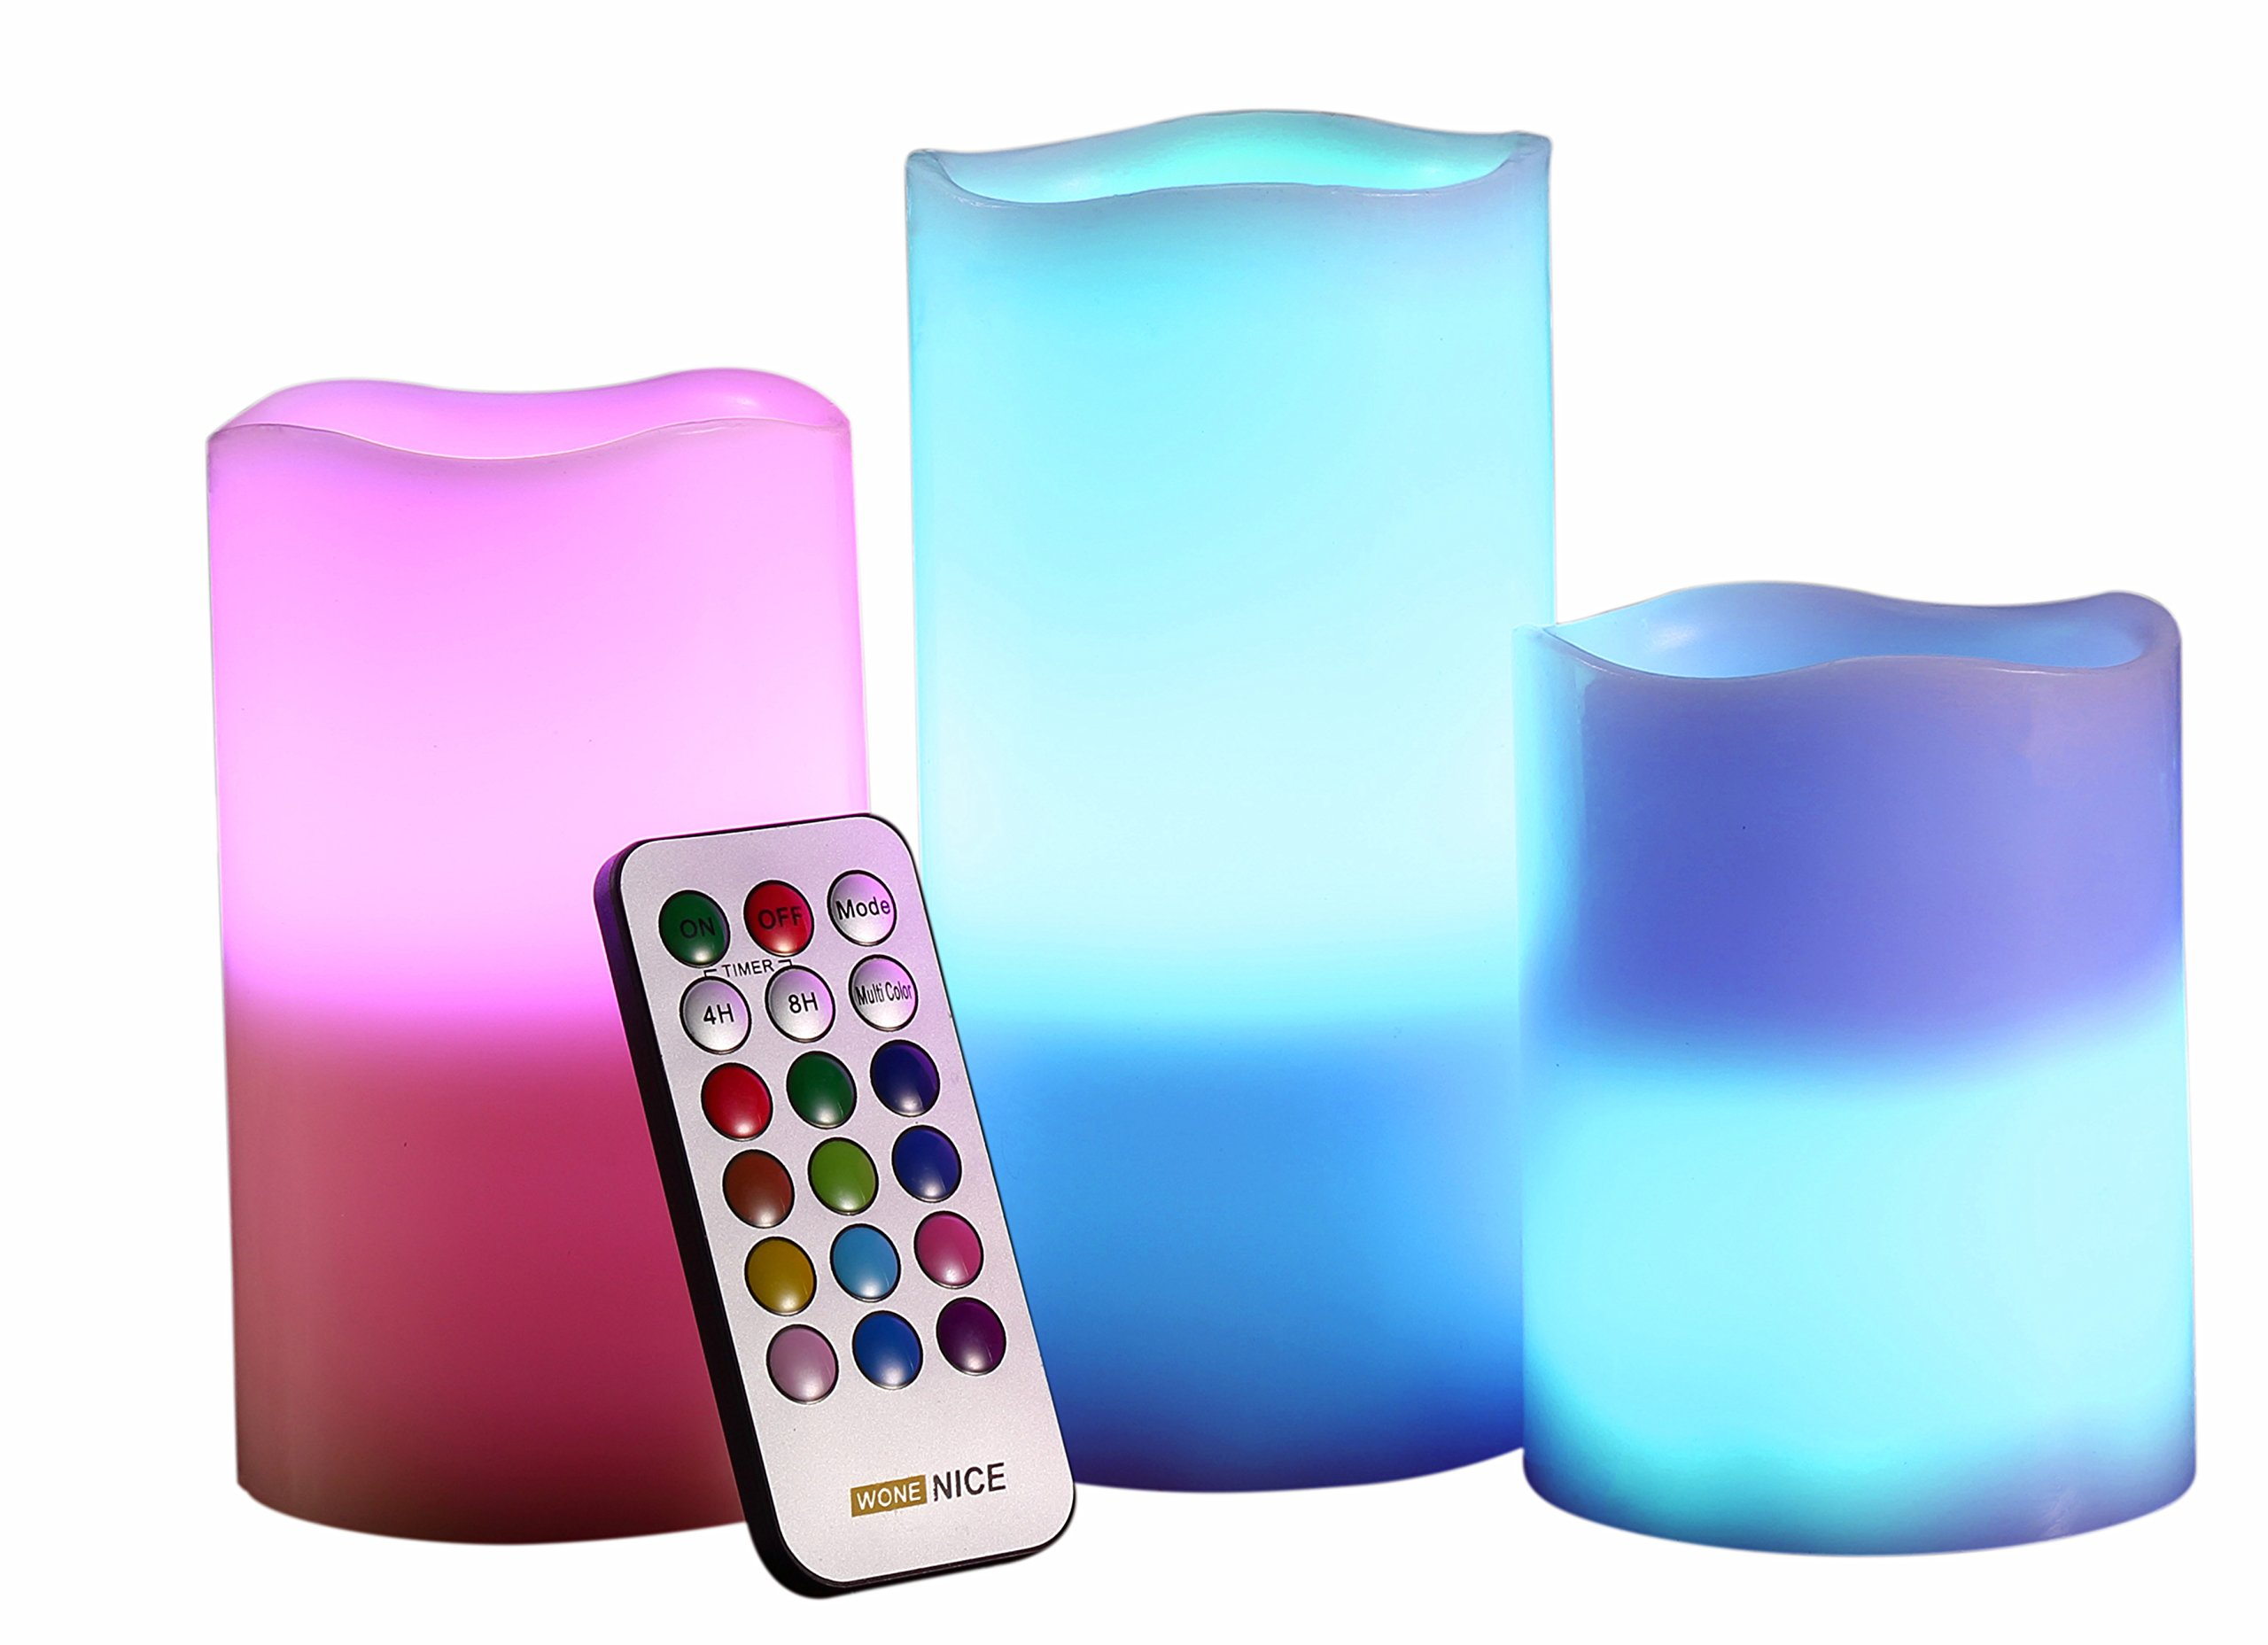 WoneNice Flickering Flameless Candles, Battery Operated Round Ivory Wax Pillar LED Candles With Flickering Multi Colored Flame, Auto-Off Timer Remote Control, Decorations for Weddings Gifts, Set of 3 by WoneNice